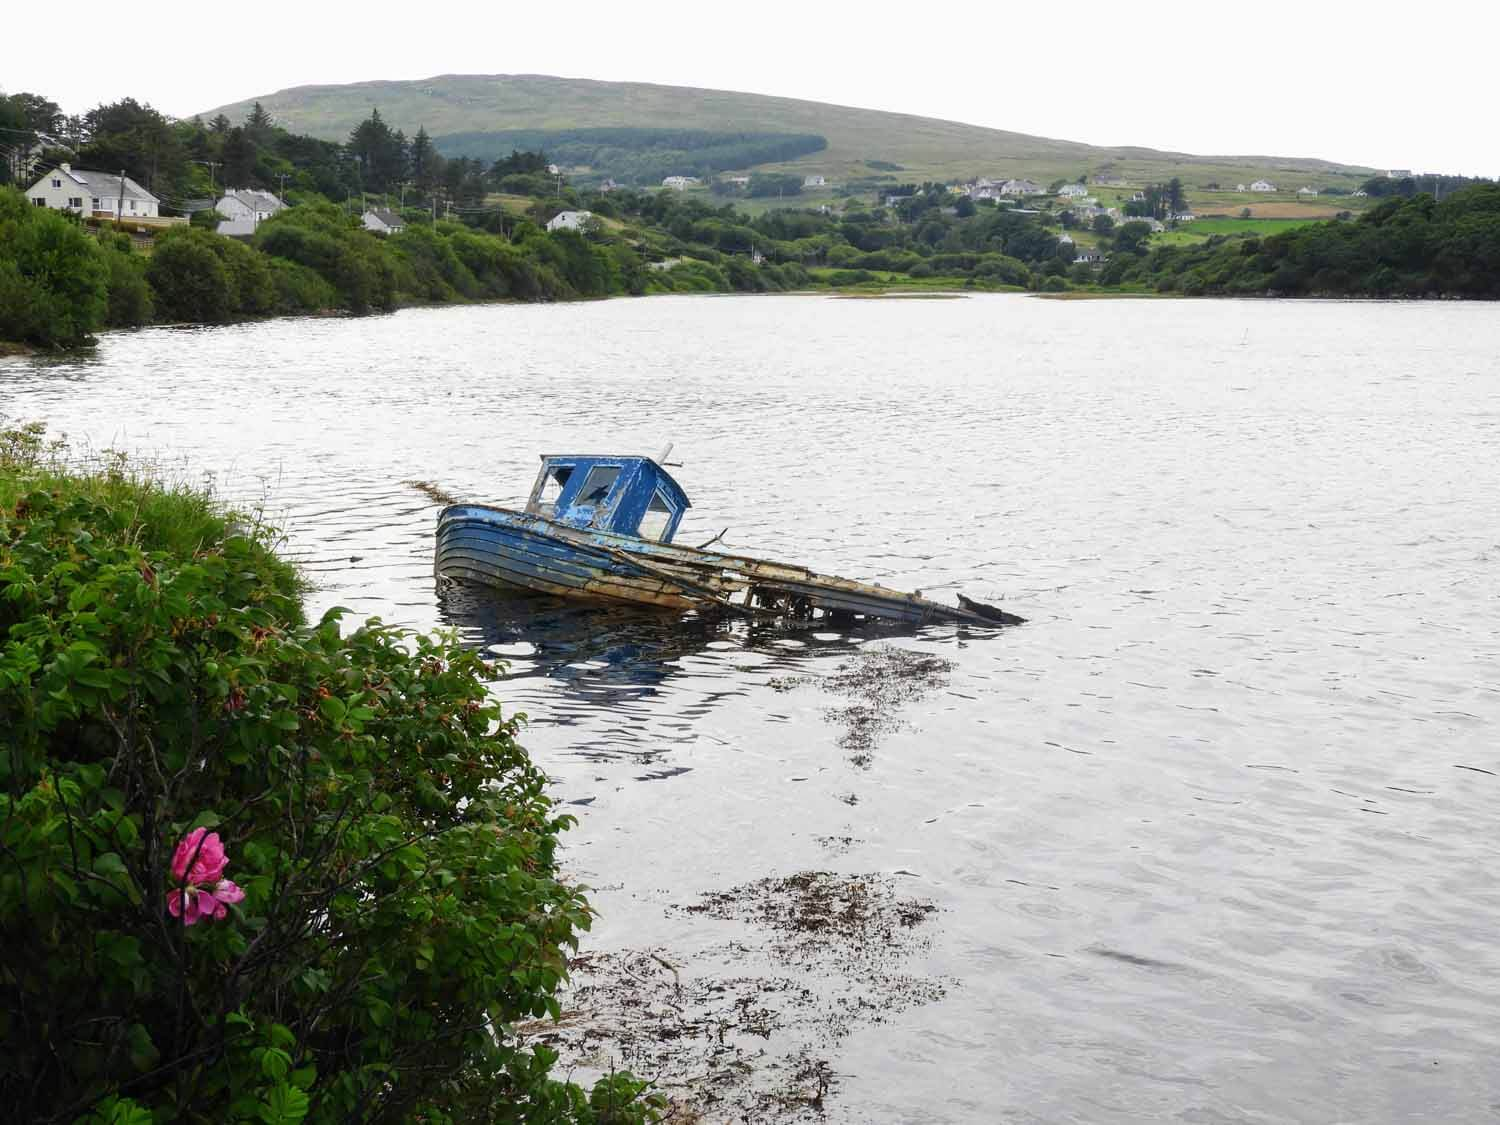 ireland-donegal-boat-sunken-bay-ocean-shore.jpg